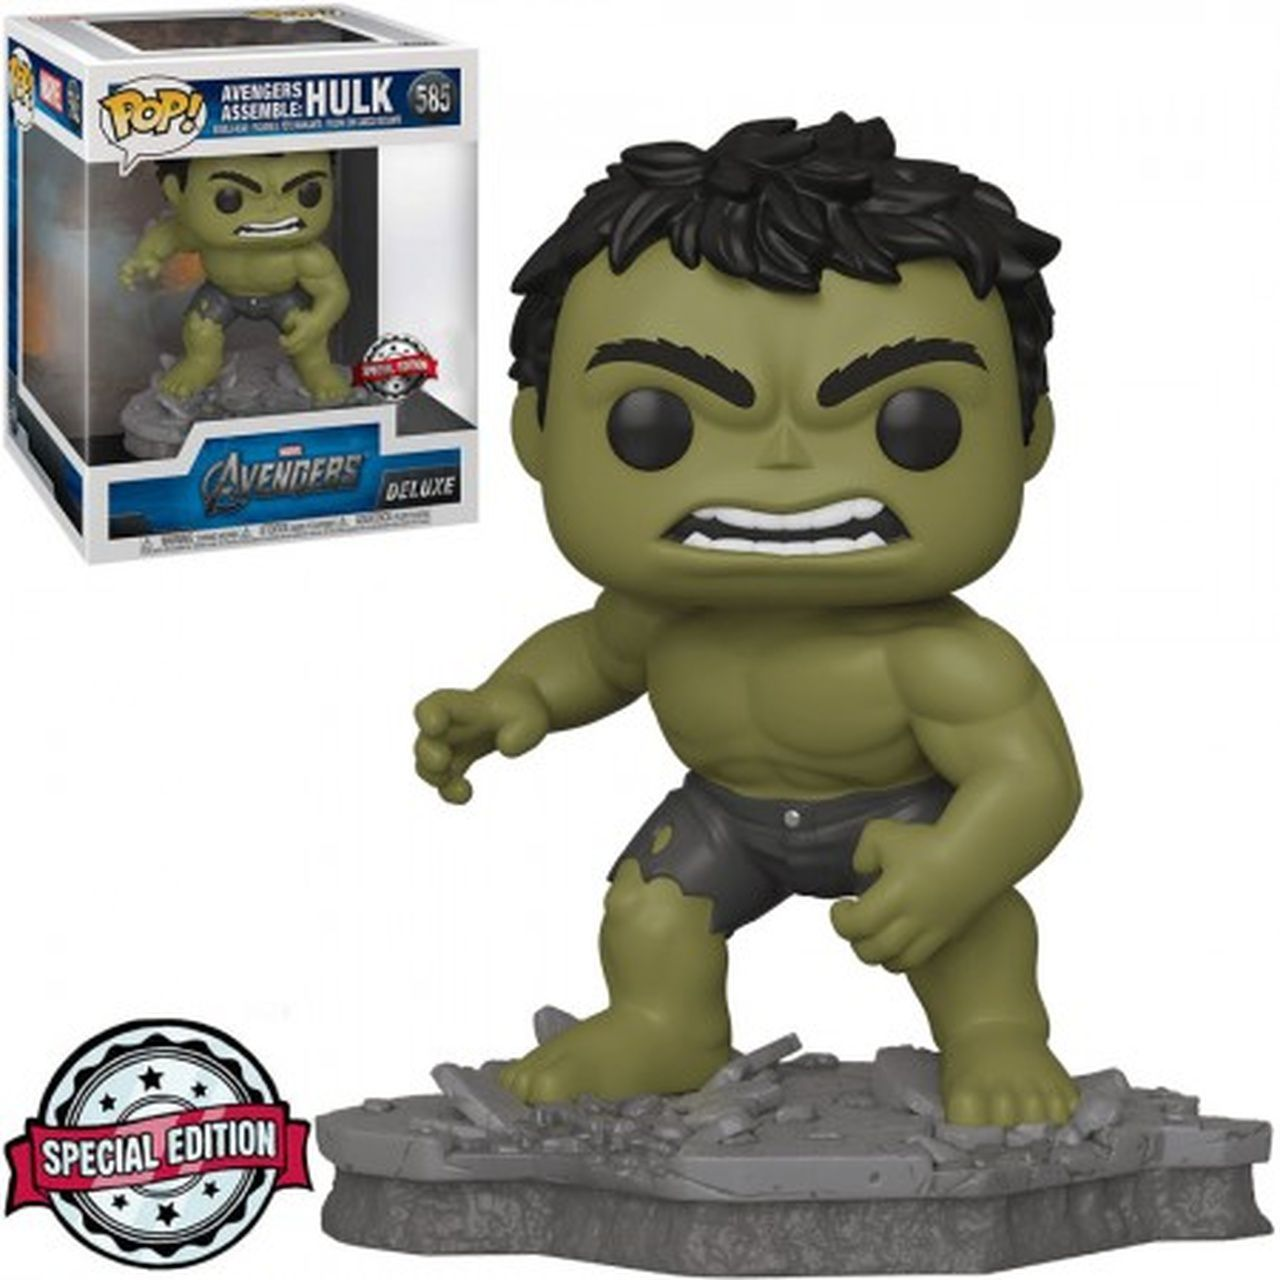 Pop! Hulk: Os Vingadores (The Avengers) Avengers Assemble Series (Exclusivo) #585 - Funko